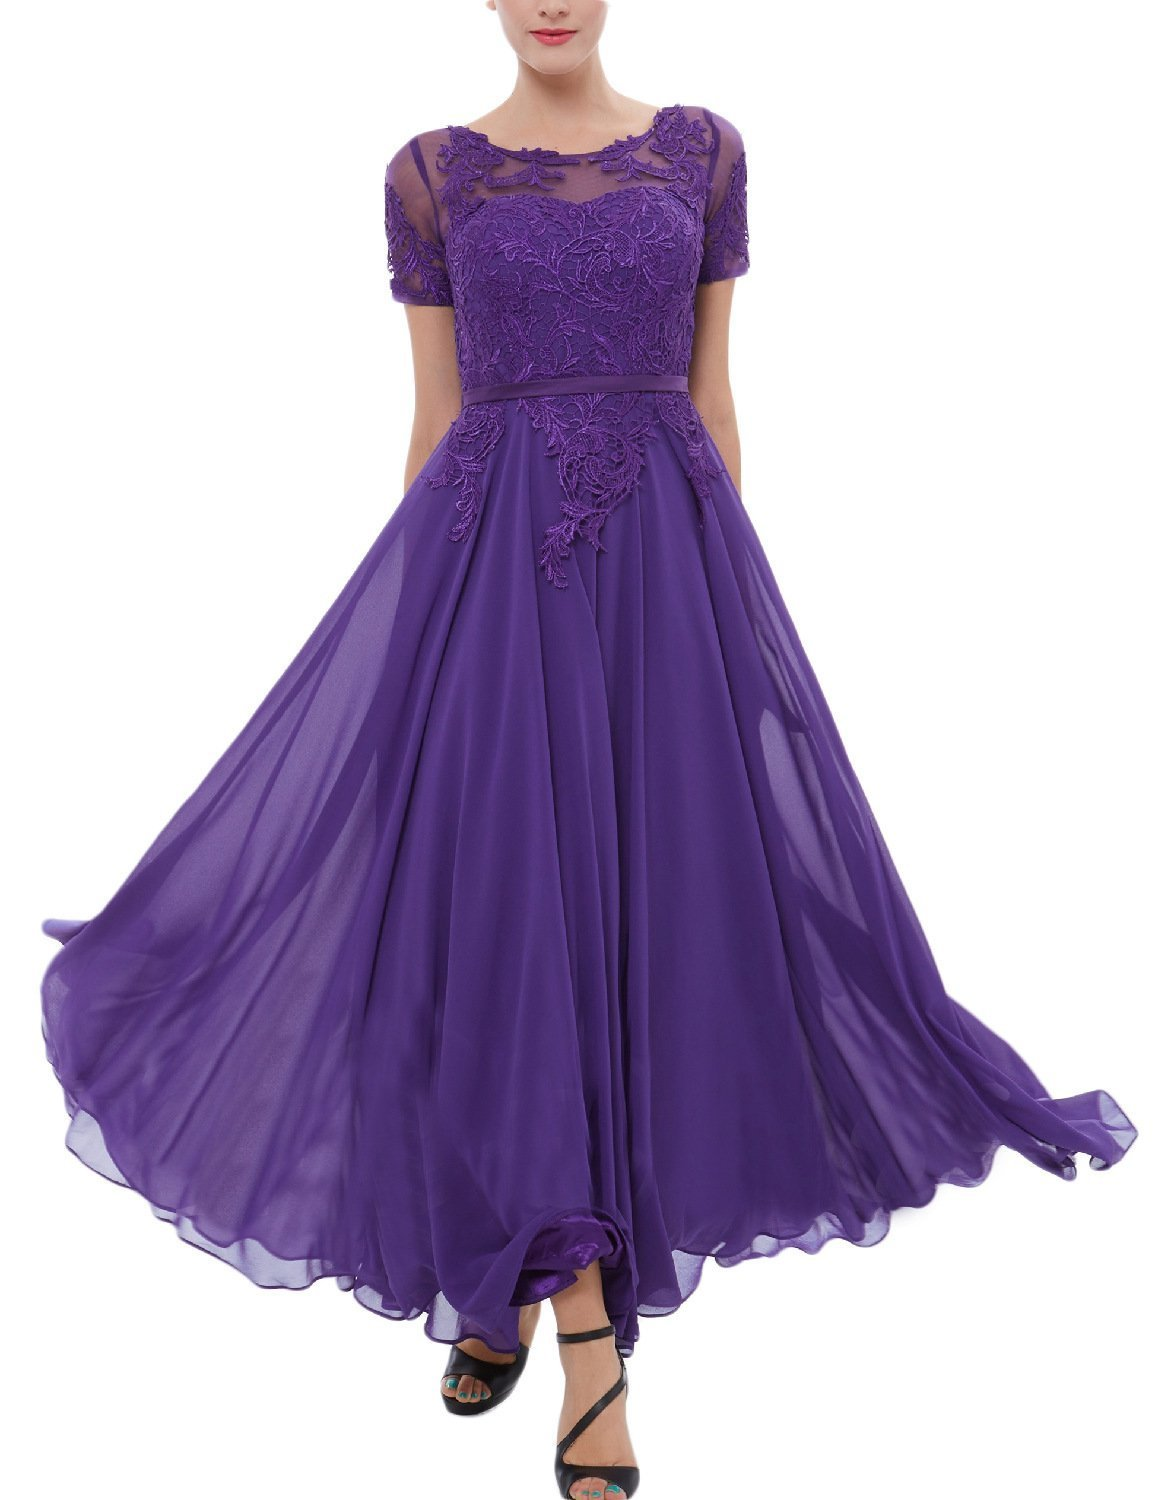 Women's Chiffon Lace Tea Length Mother of The Bride Dress with Short Sleeves